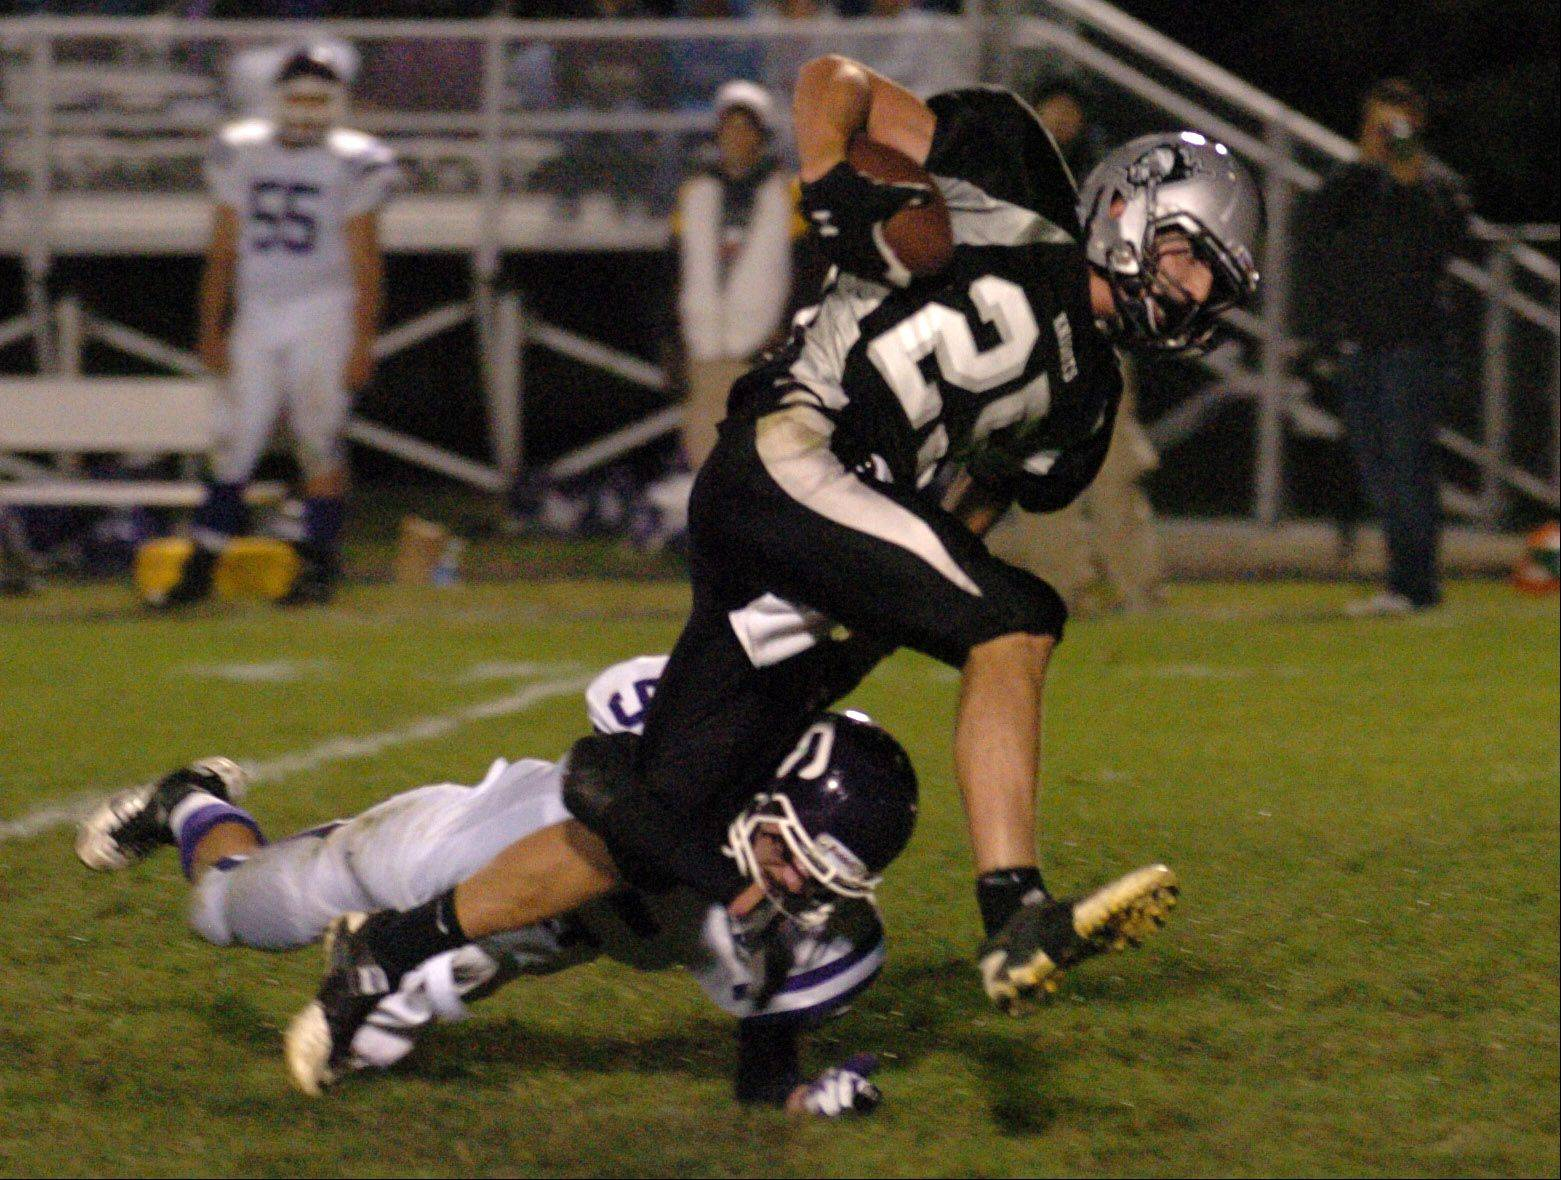 Kaneland's Sean Carter breaks a Rochelle defenders tackle Friday at Kaneland High School.